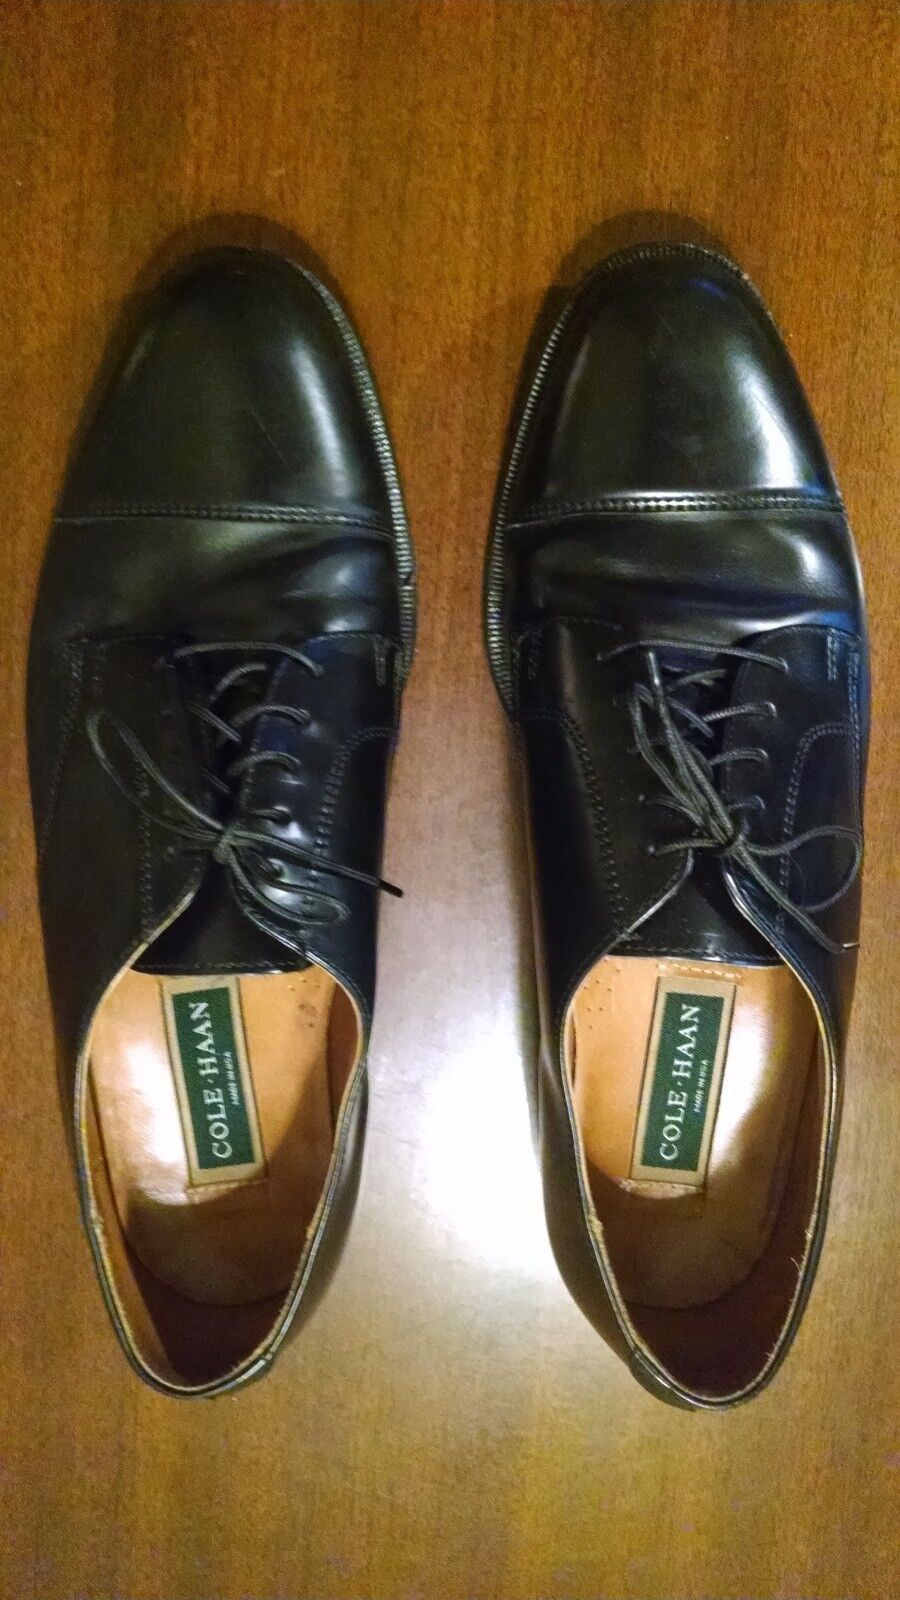 Cole Haan 8000 Mens Leather Dress Shoes 8000 Haan Black Derby Oxford type fad1d9